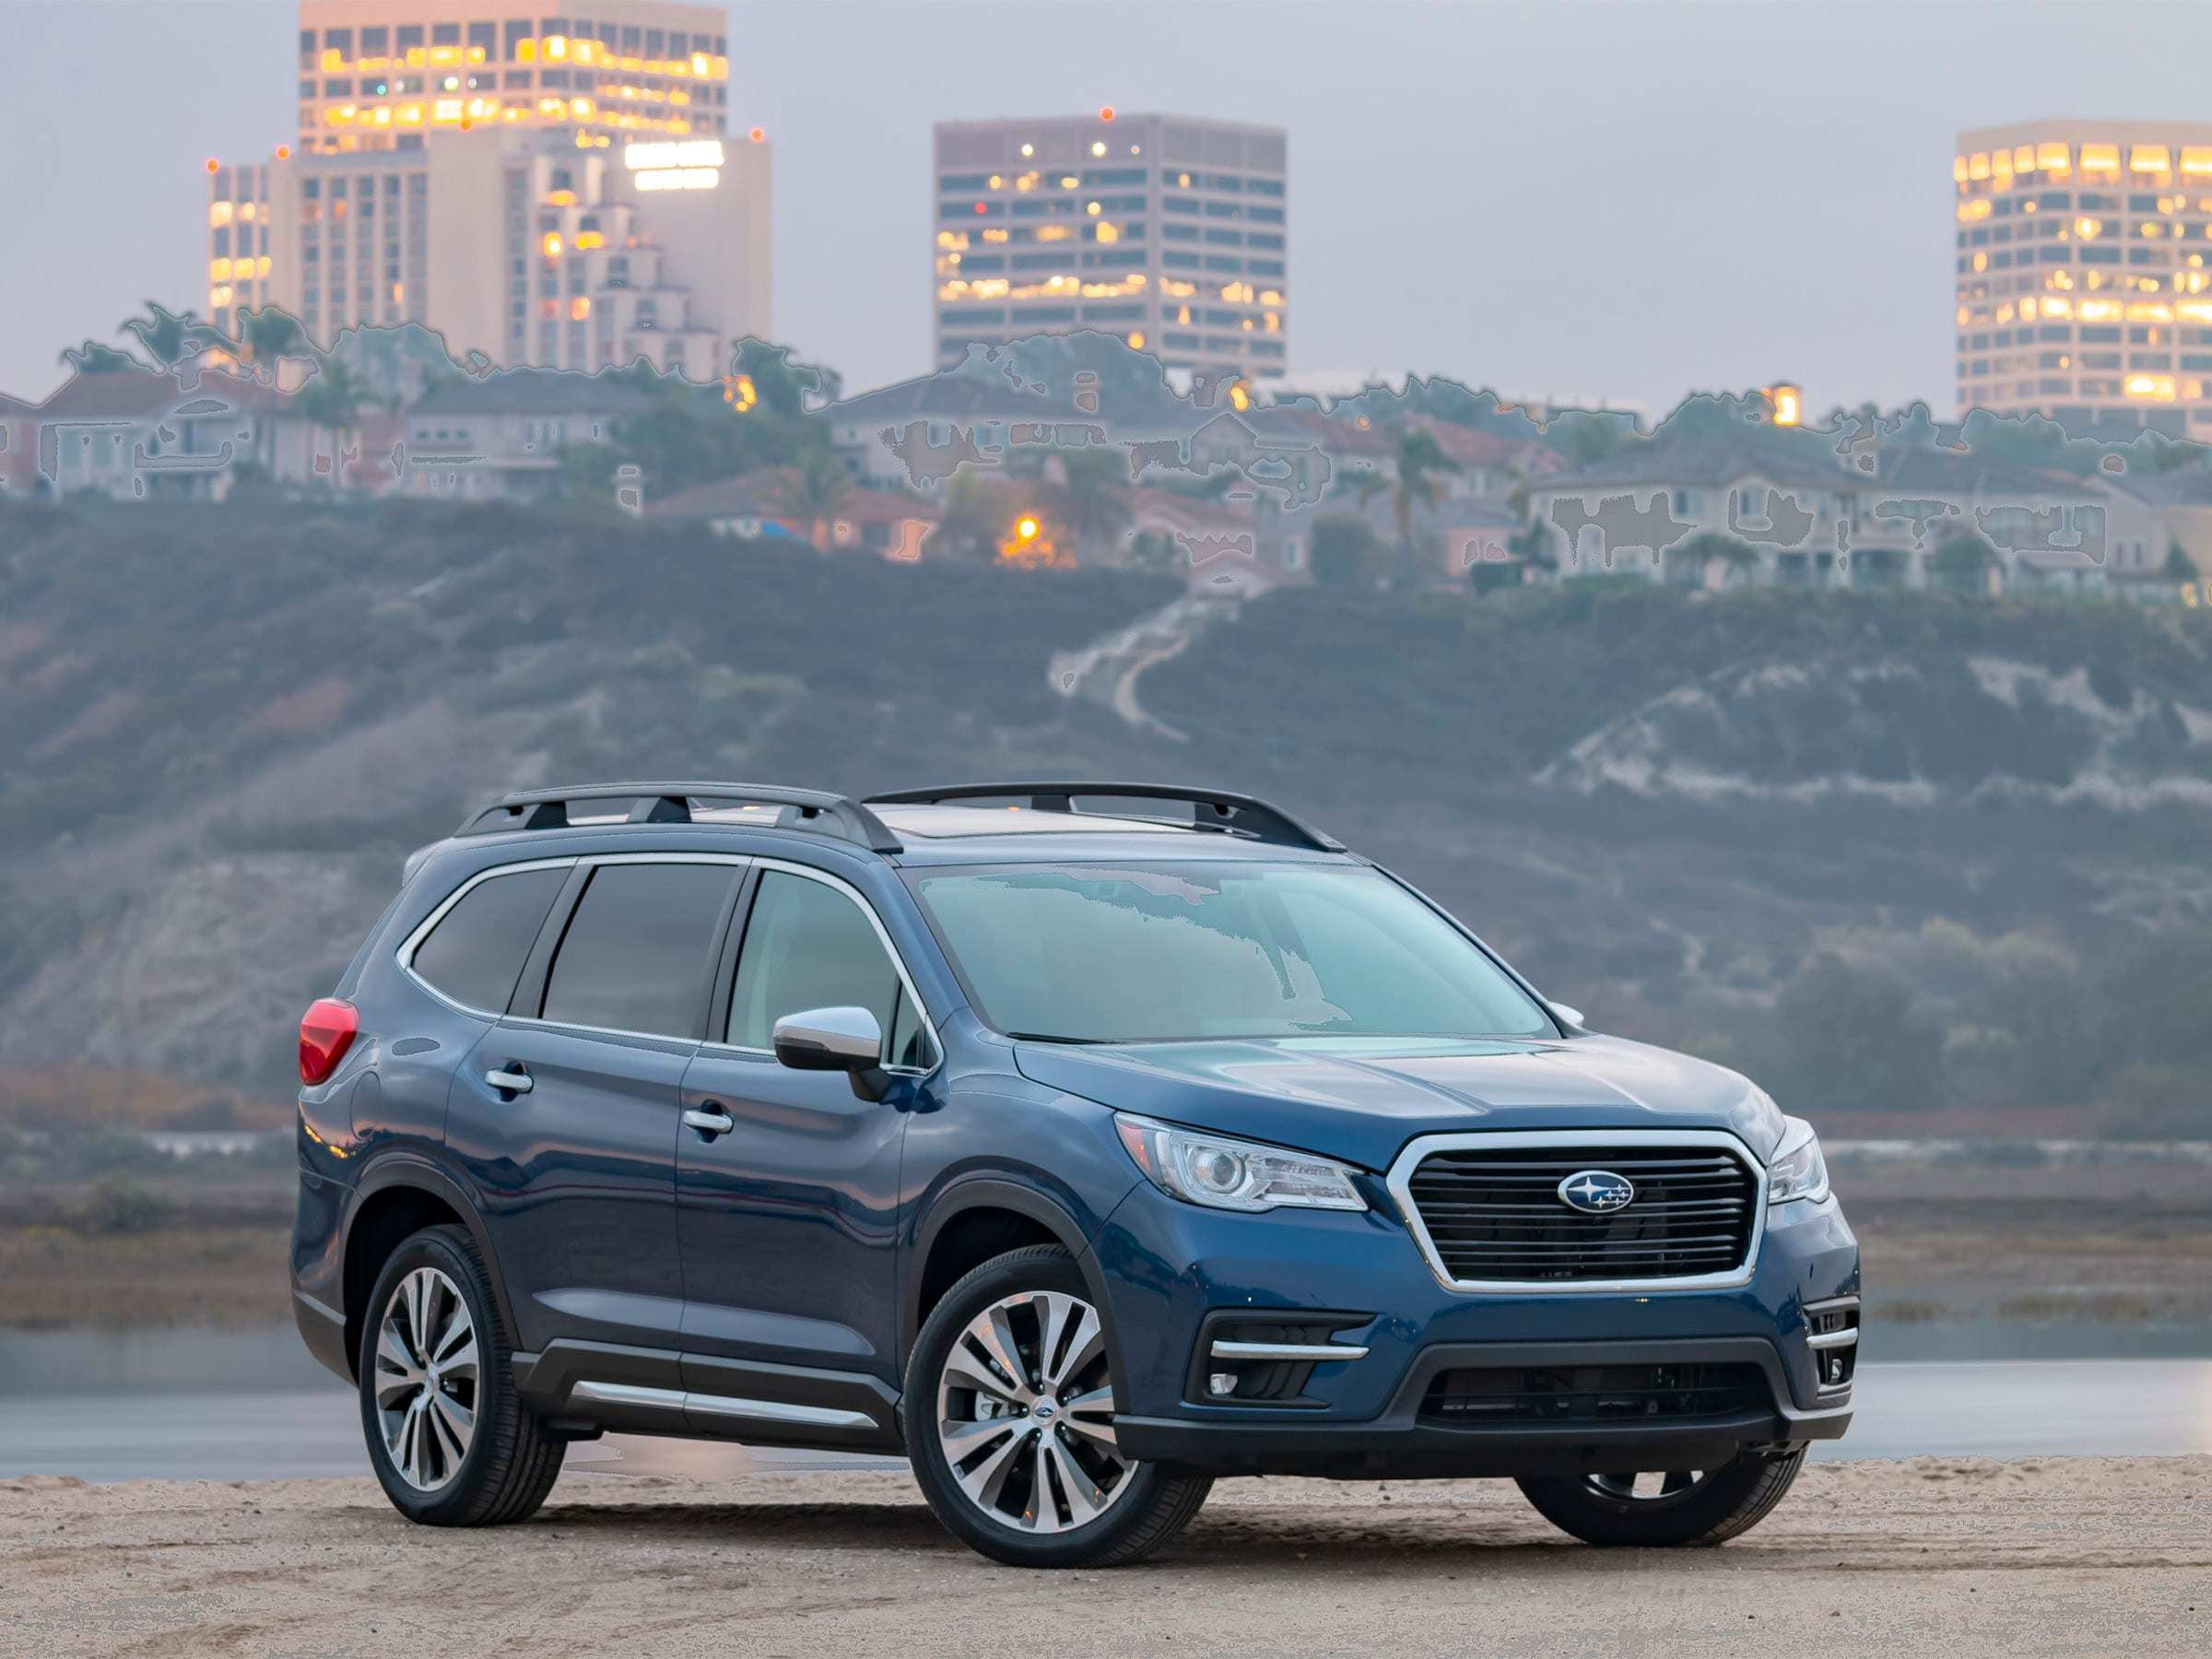 89 Best Review 2019 Subaru Ascent News Model for 2019 Subaru Ascent News